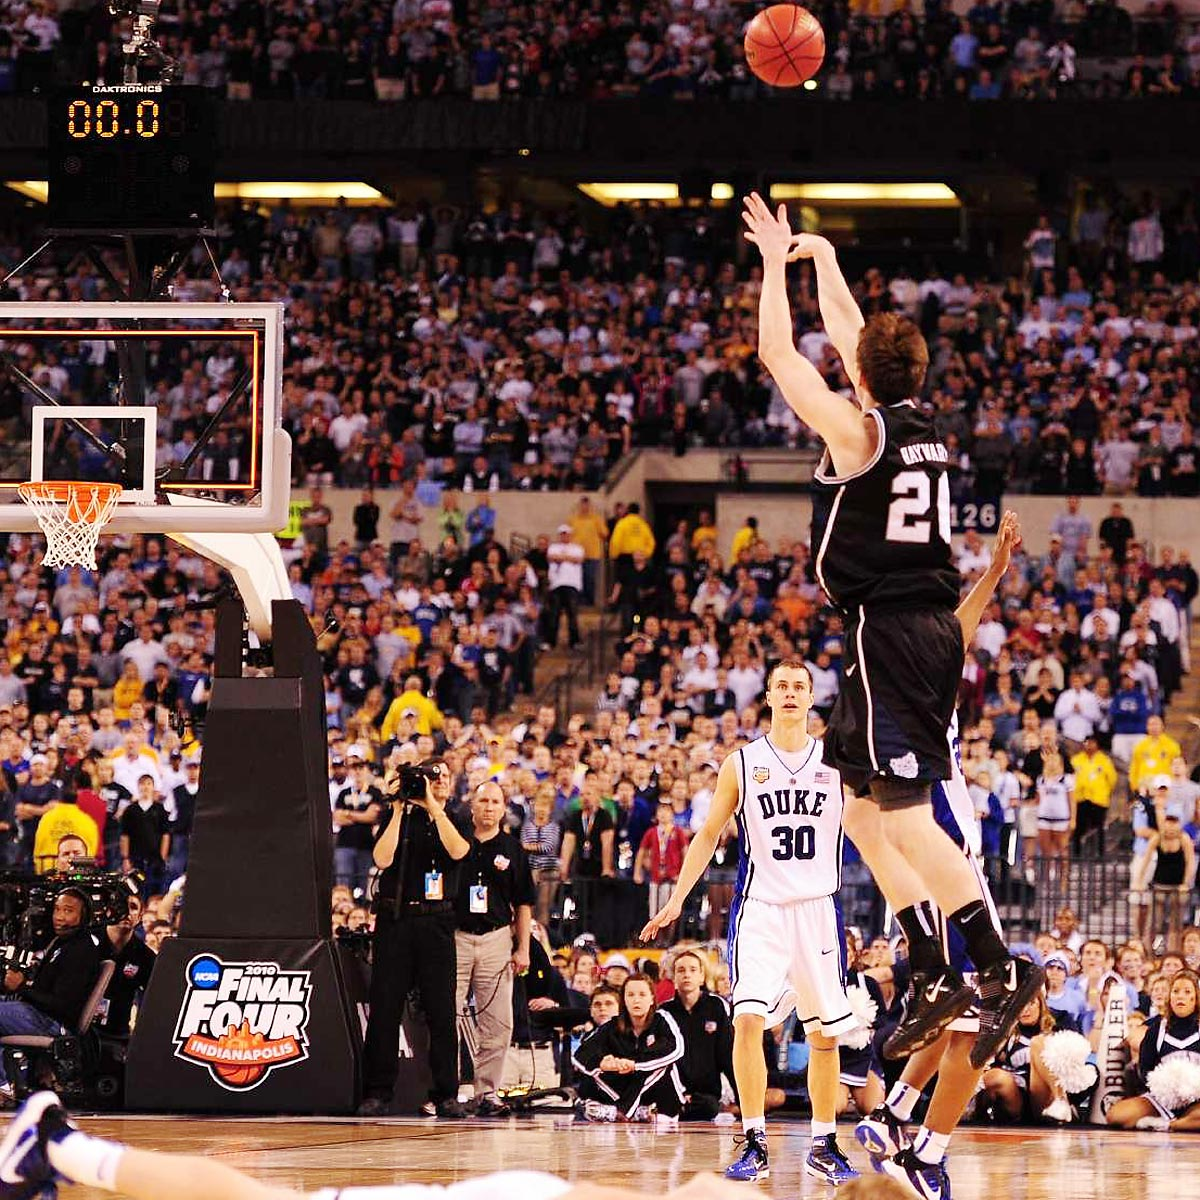 Duke vs. Butler, NCAA Men's Basketball Championship game, 2010 | Trailing 61-59 in the final seconds of the championship game, Butler star Gordon Hayward had a chance to win it all with his half-court heave. The shot hit the backboard and clanged off the rim, giving Duke its fourth title.